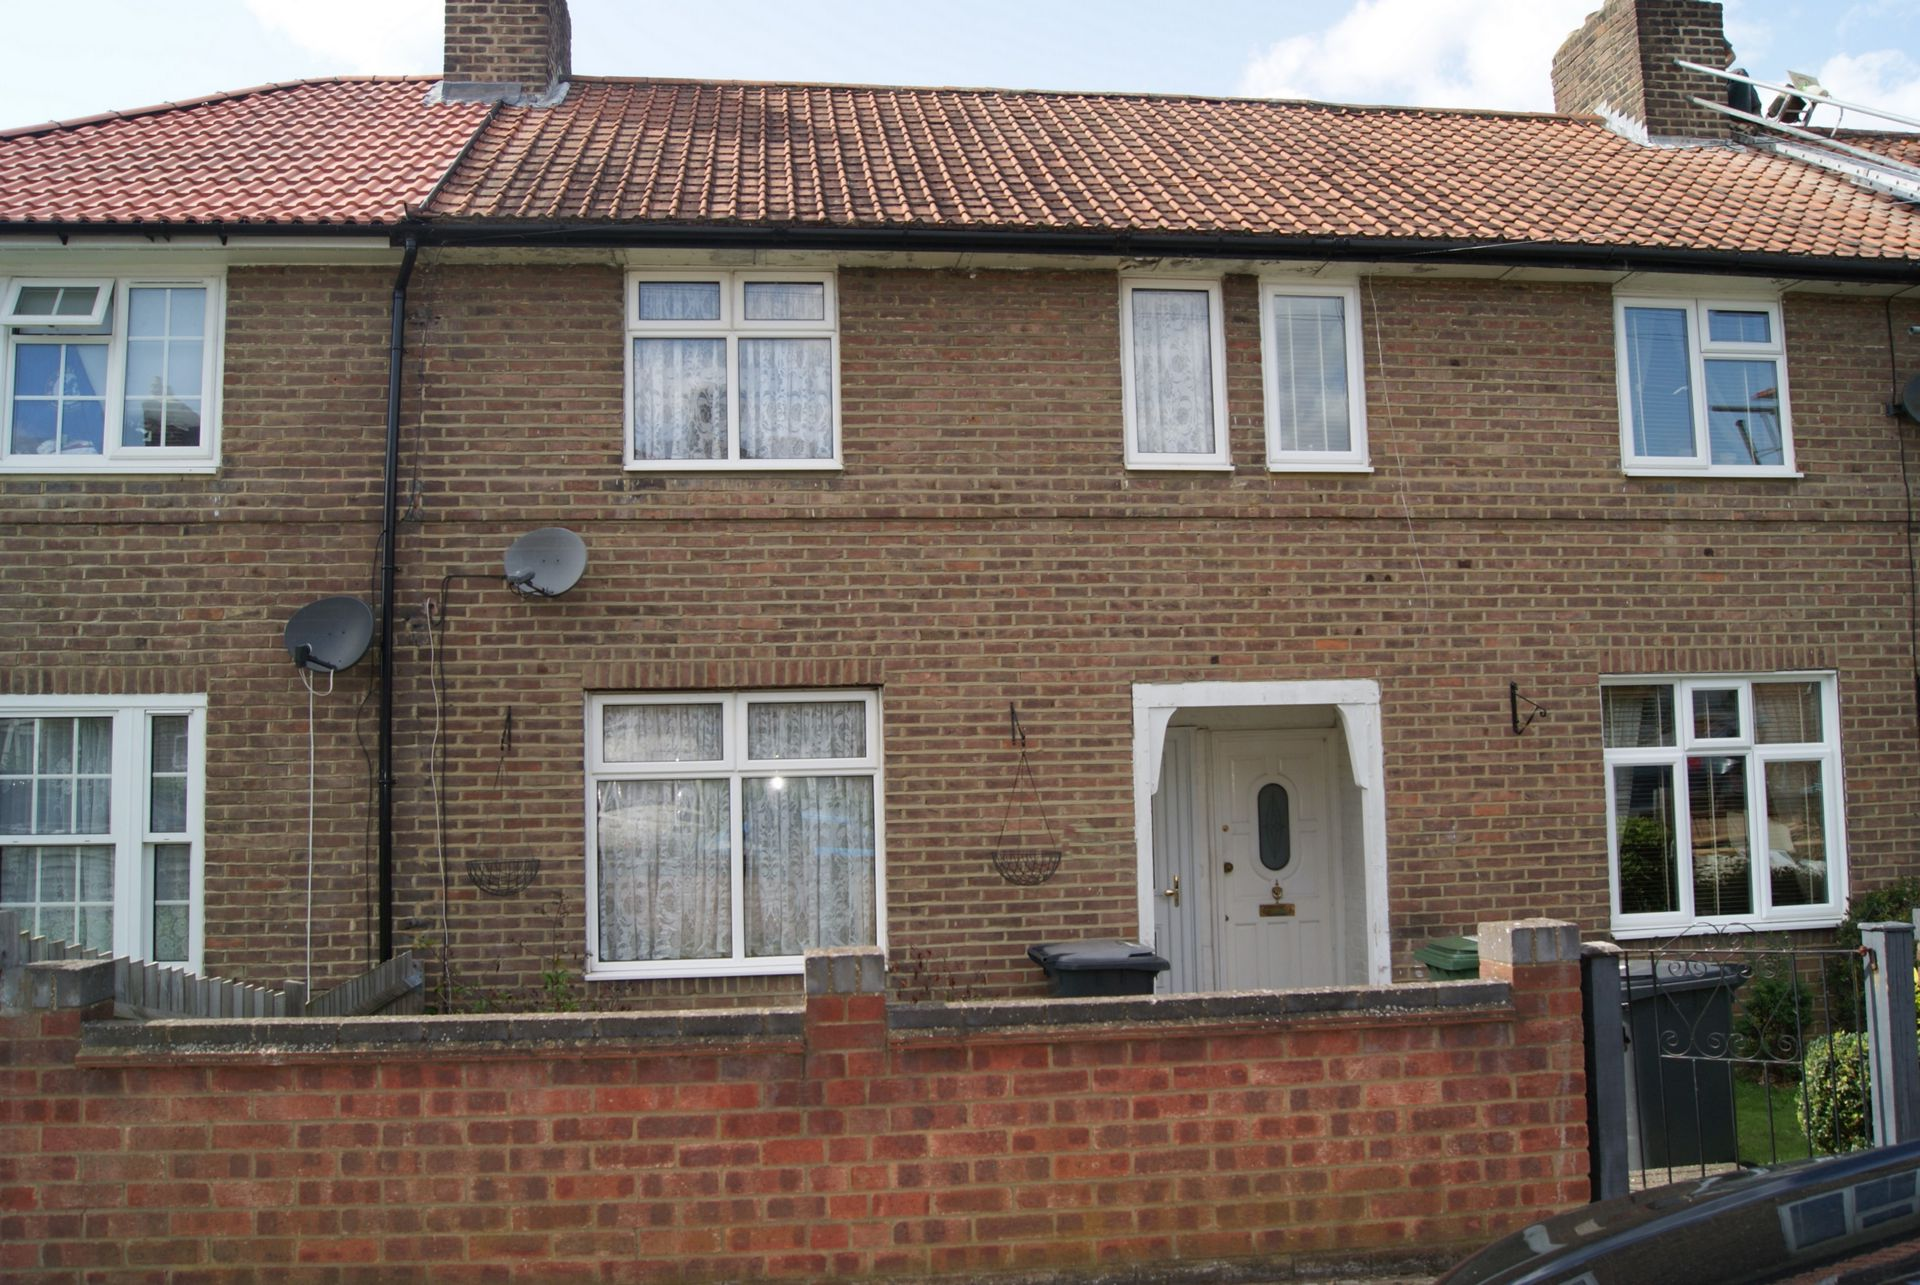 Glenbow Road  Bromley  BR1